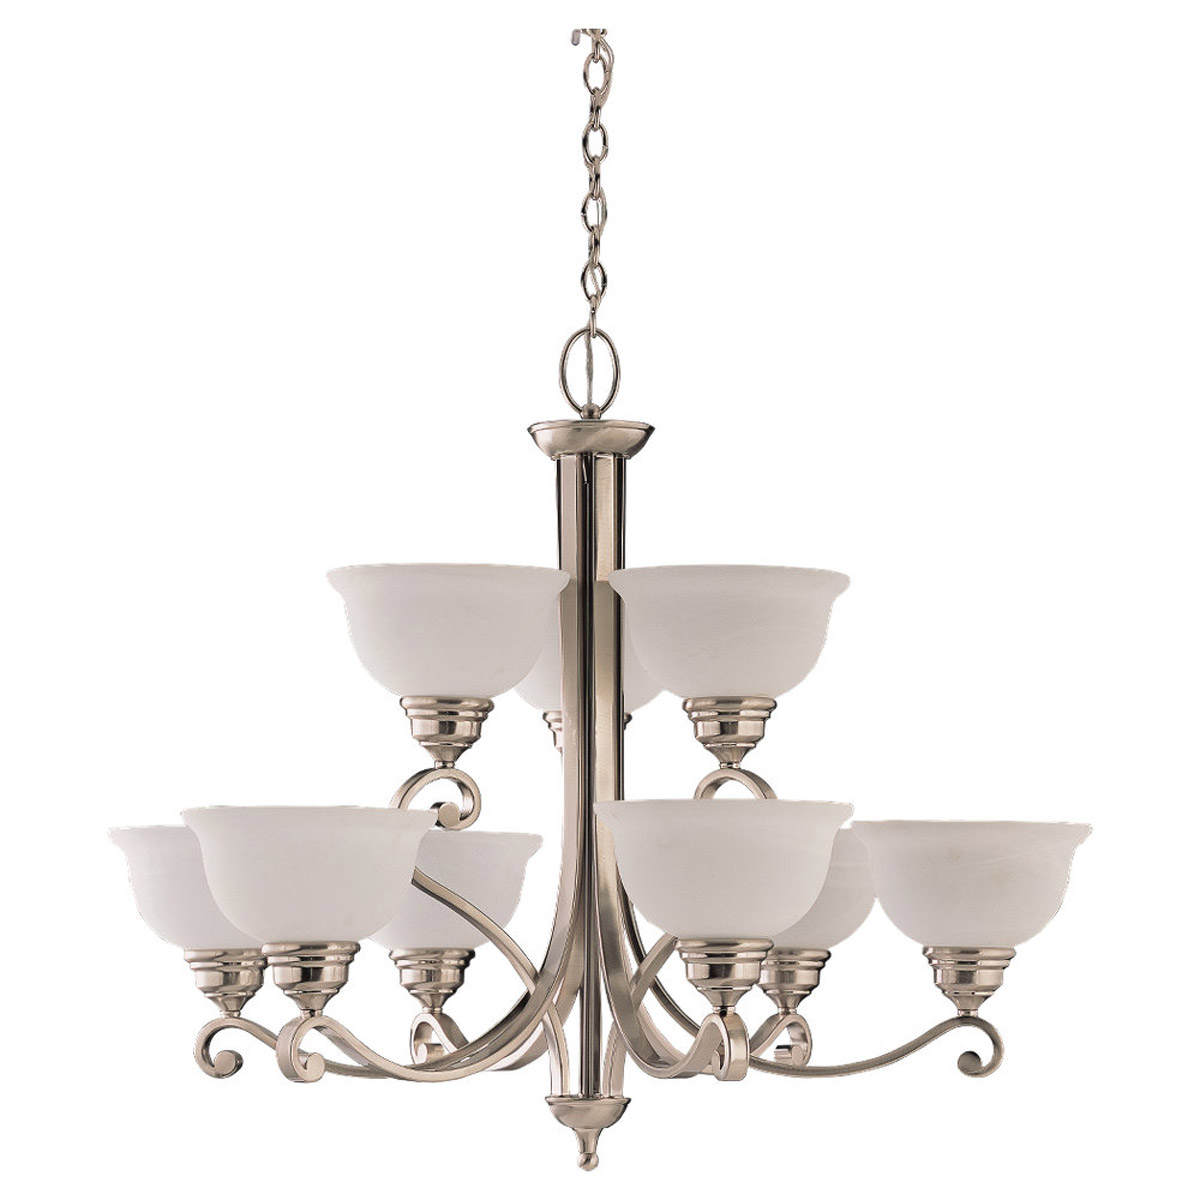 Sea Gull Lighting Serenity 9 Light Chandelier in Brushed Nickel 31192-962